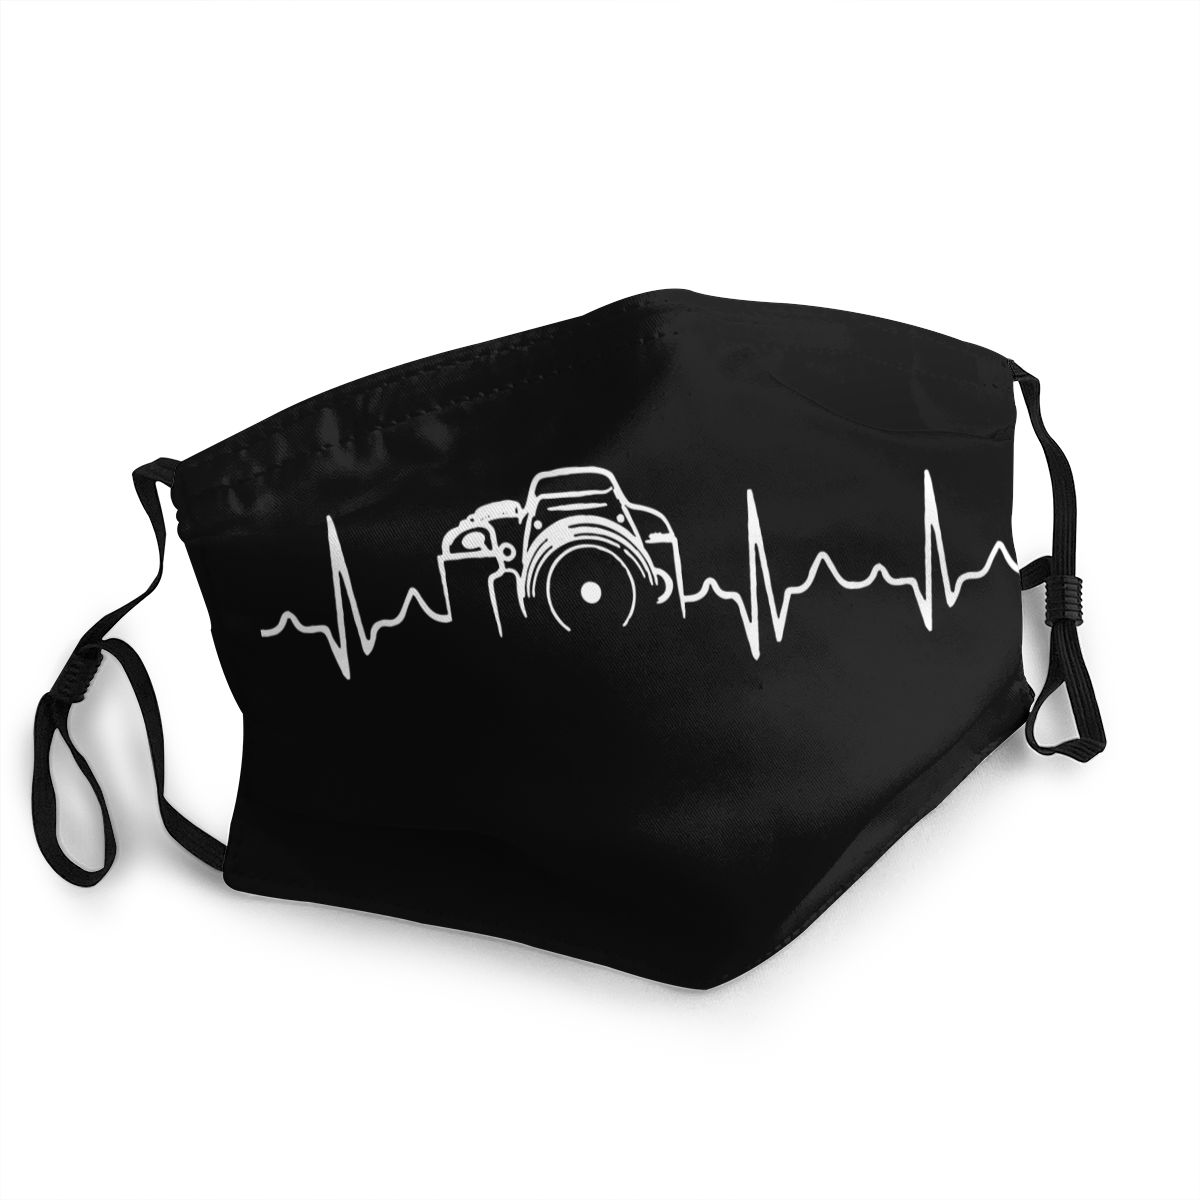 Heartbeat Of Camera Reusable Mouth Face Mask Photographer Anti Haze Dustproof Mask Protection Cover Respirator Mouth Muffle